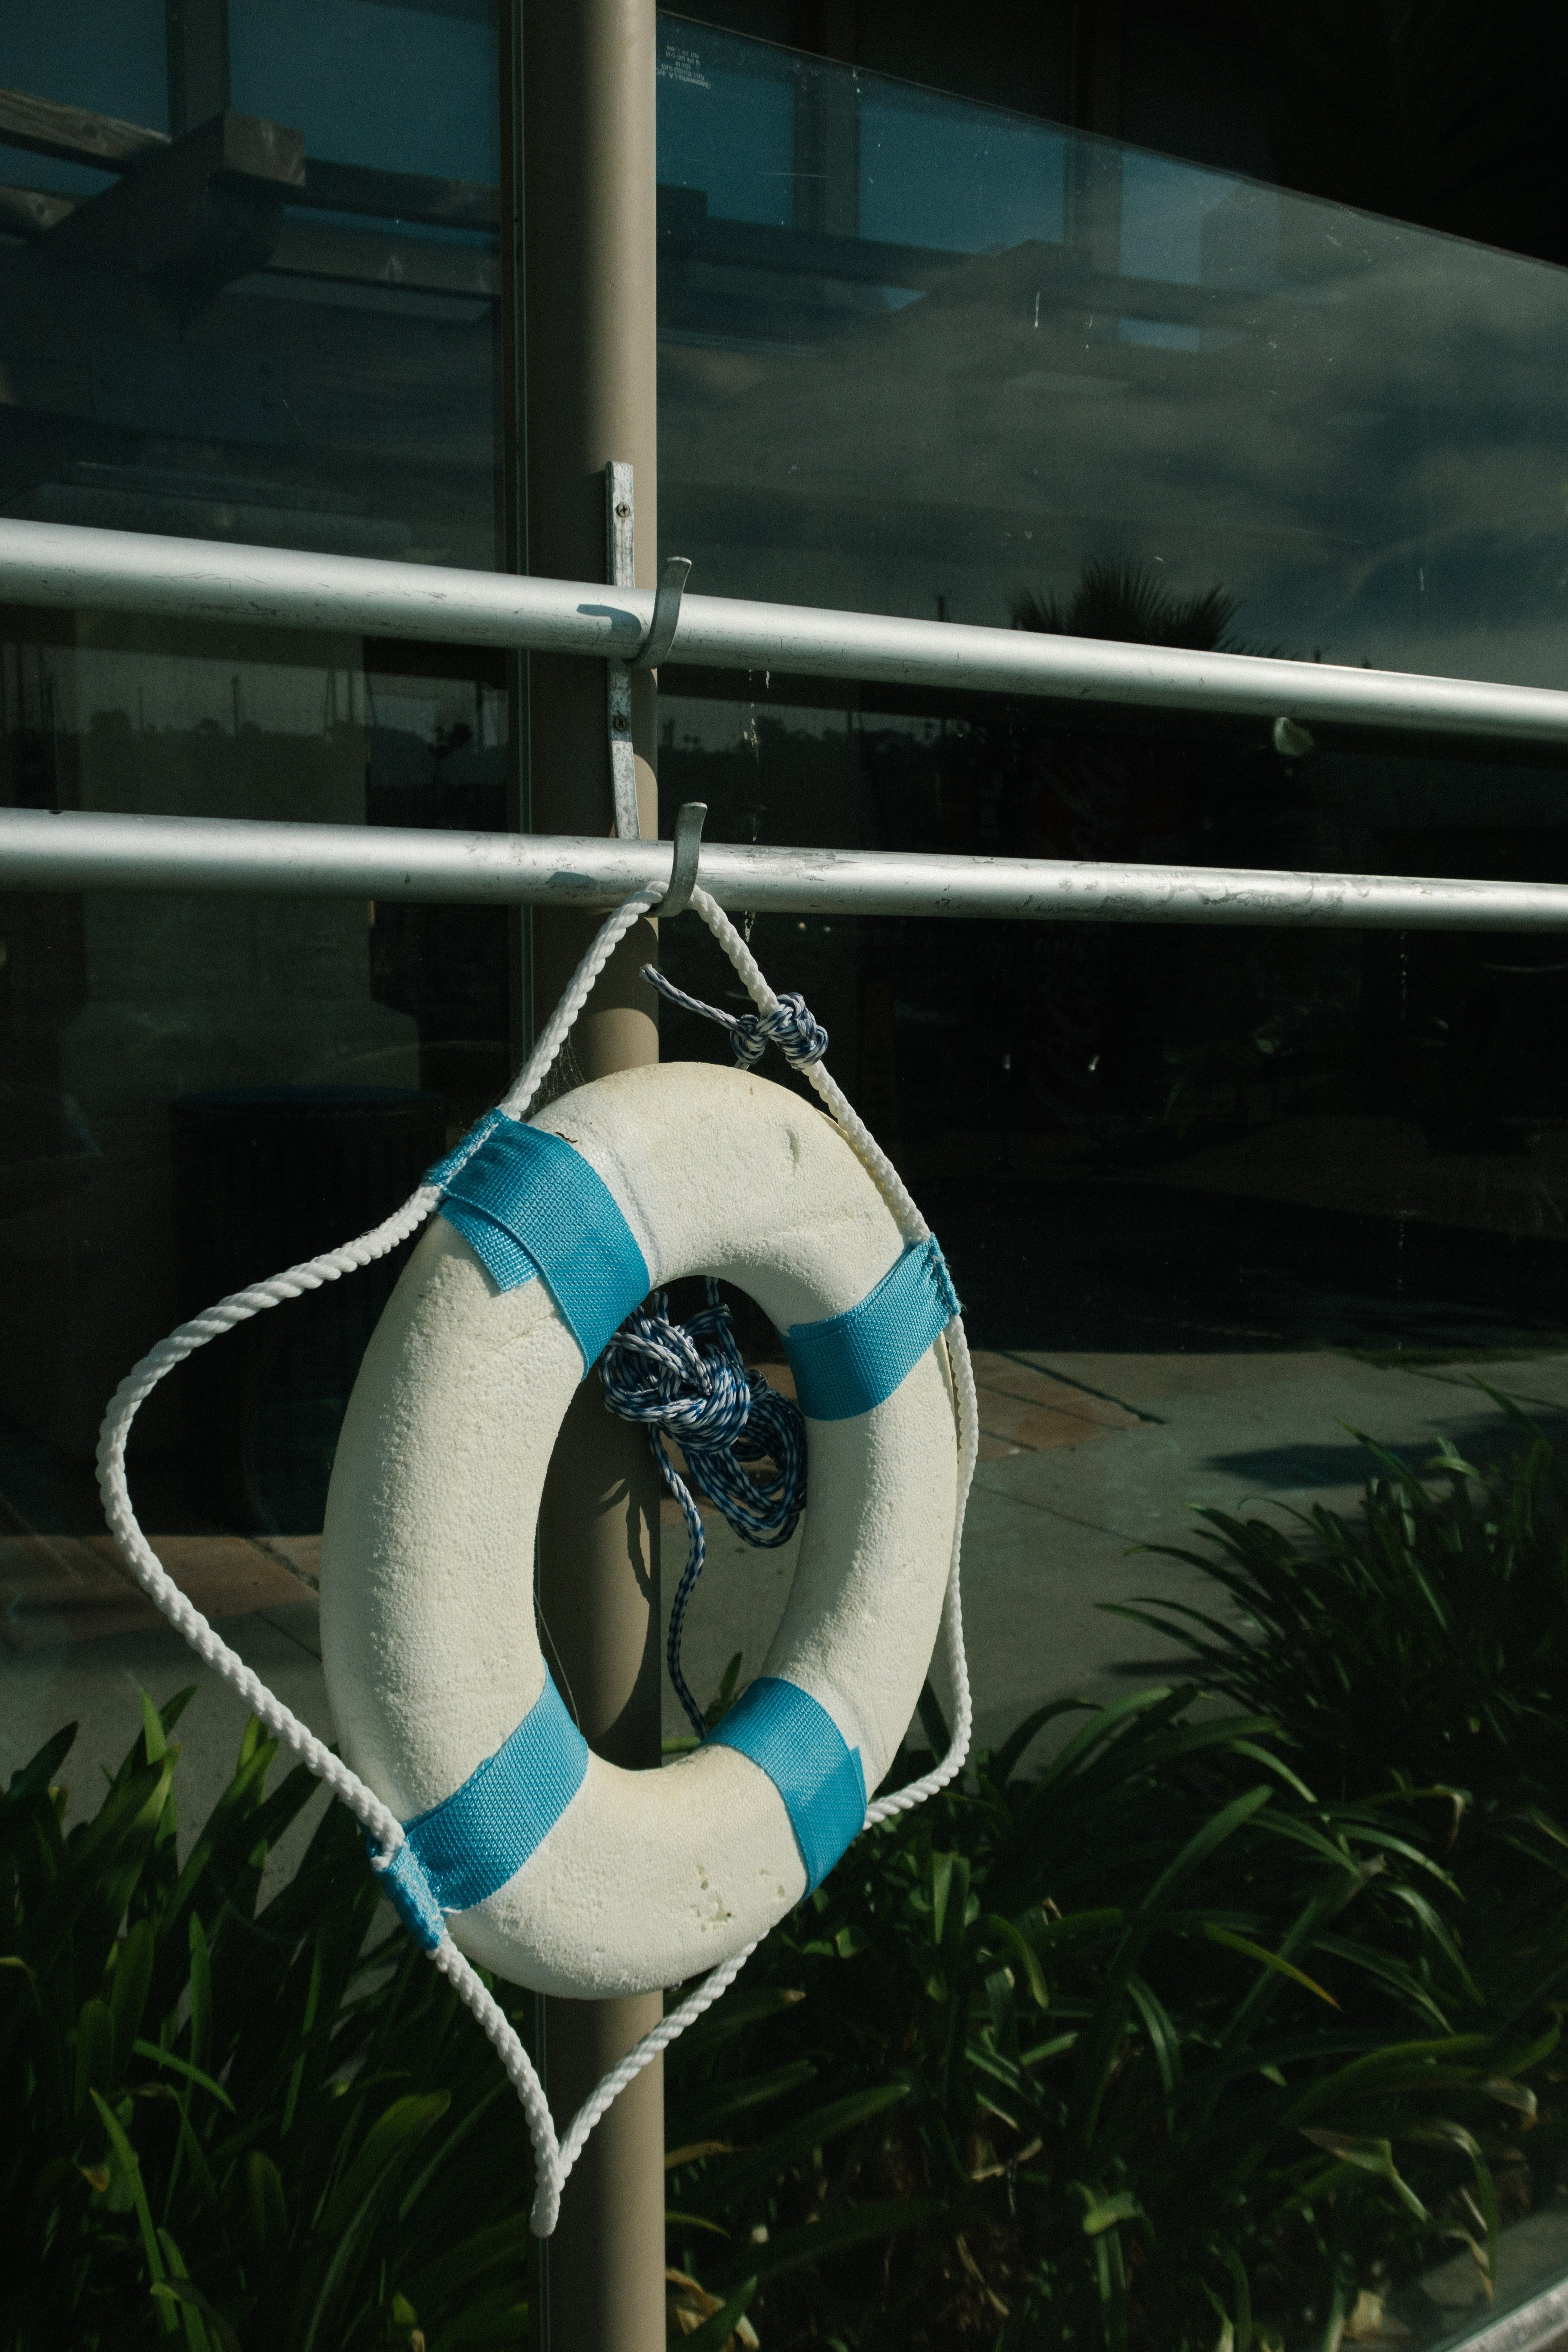 Blue and white life saver buoy attached to a pole.   Pexels/ Athena